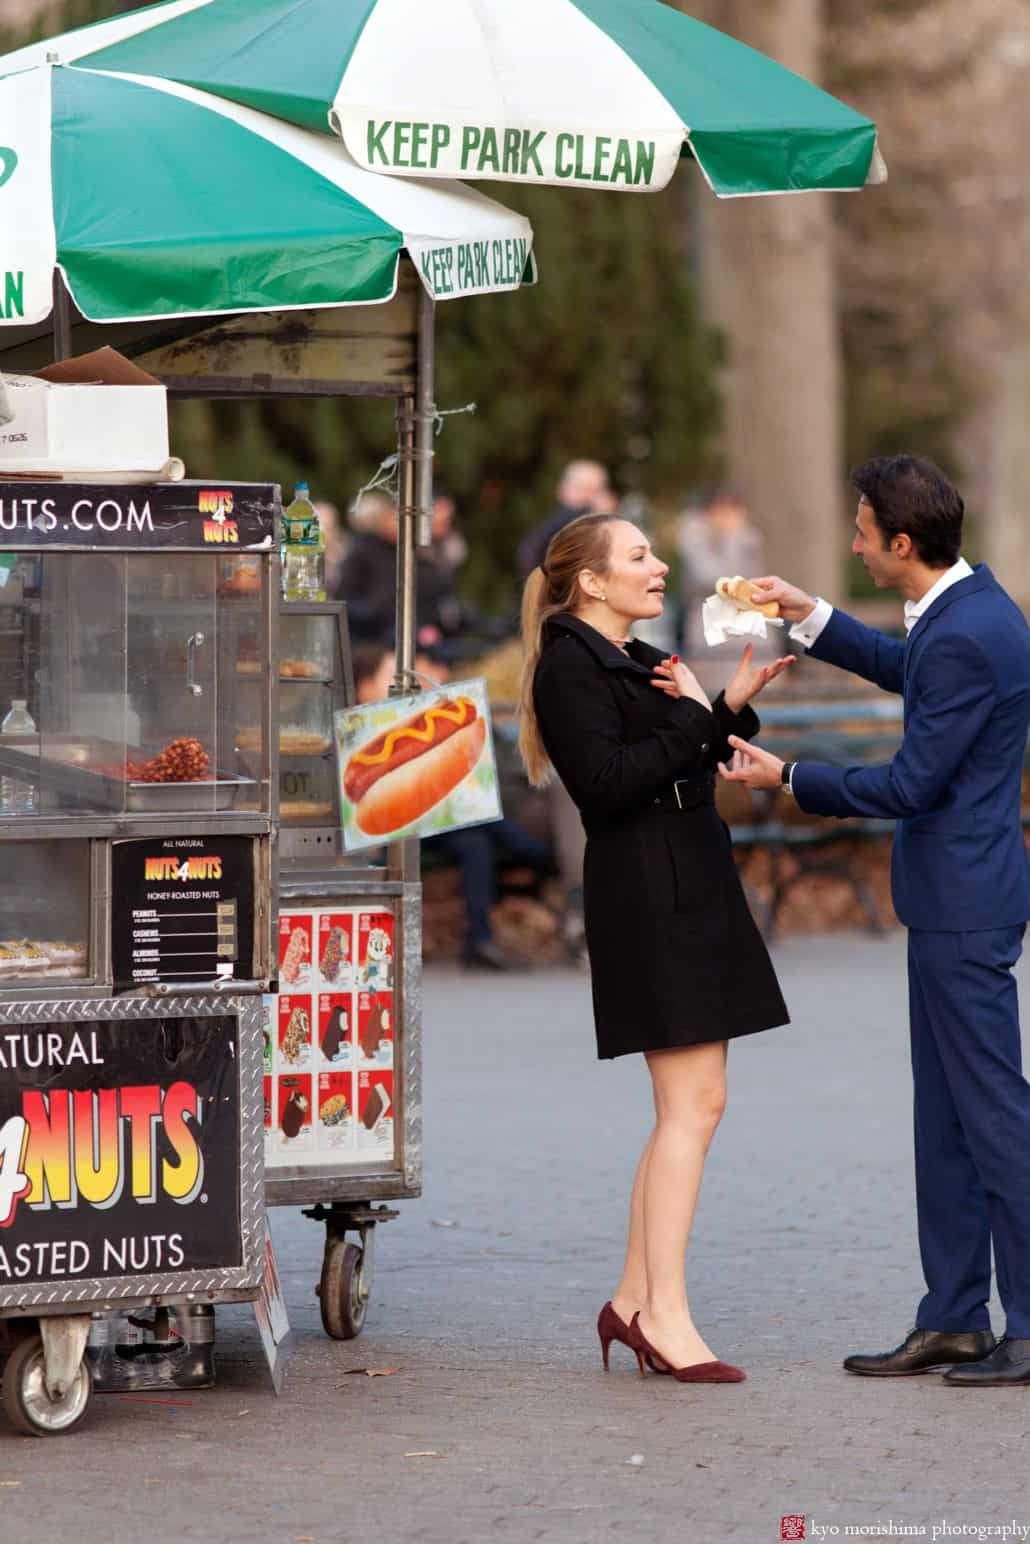 Funny Central Park engagement photo as man offers his fiancée a hot dog